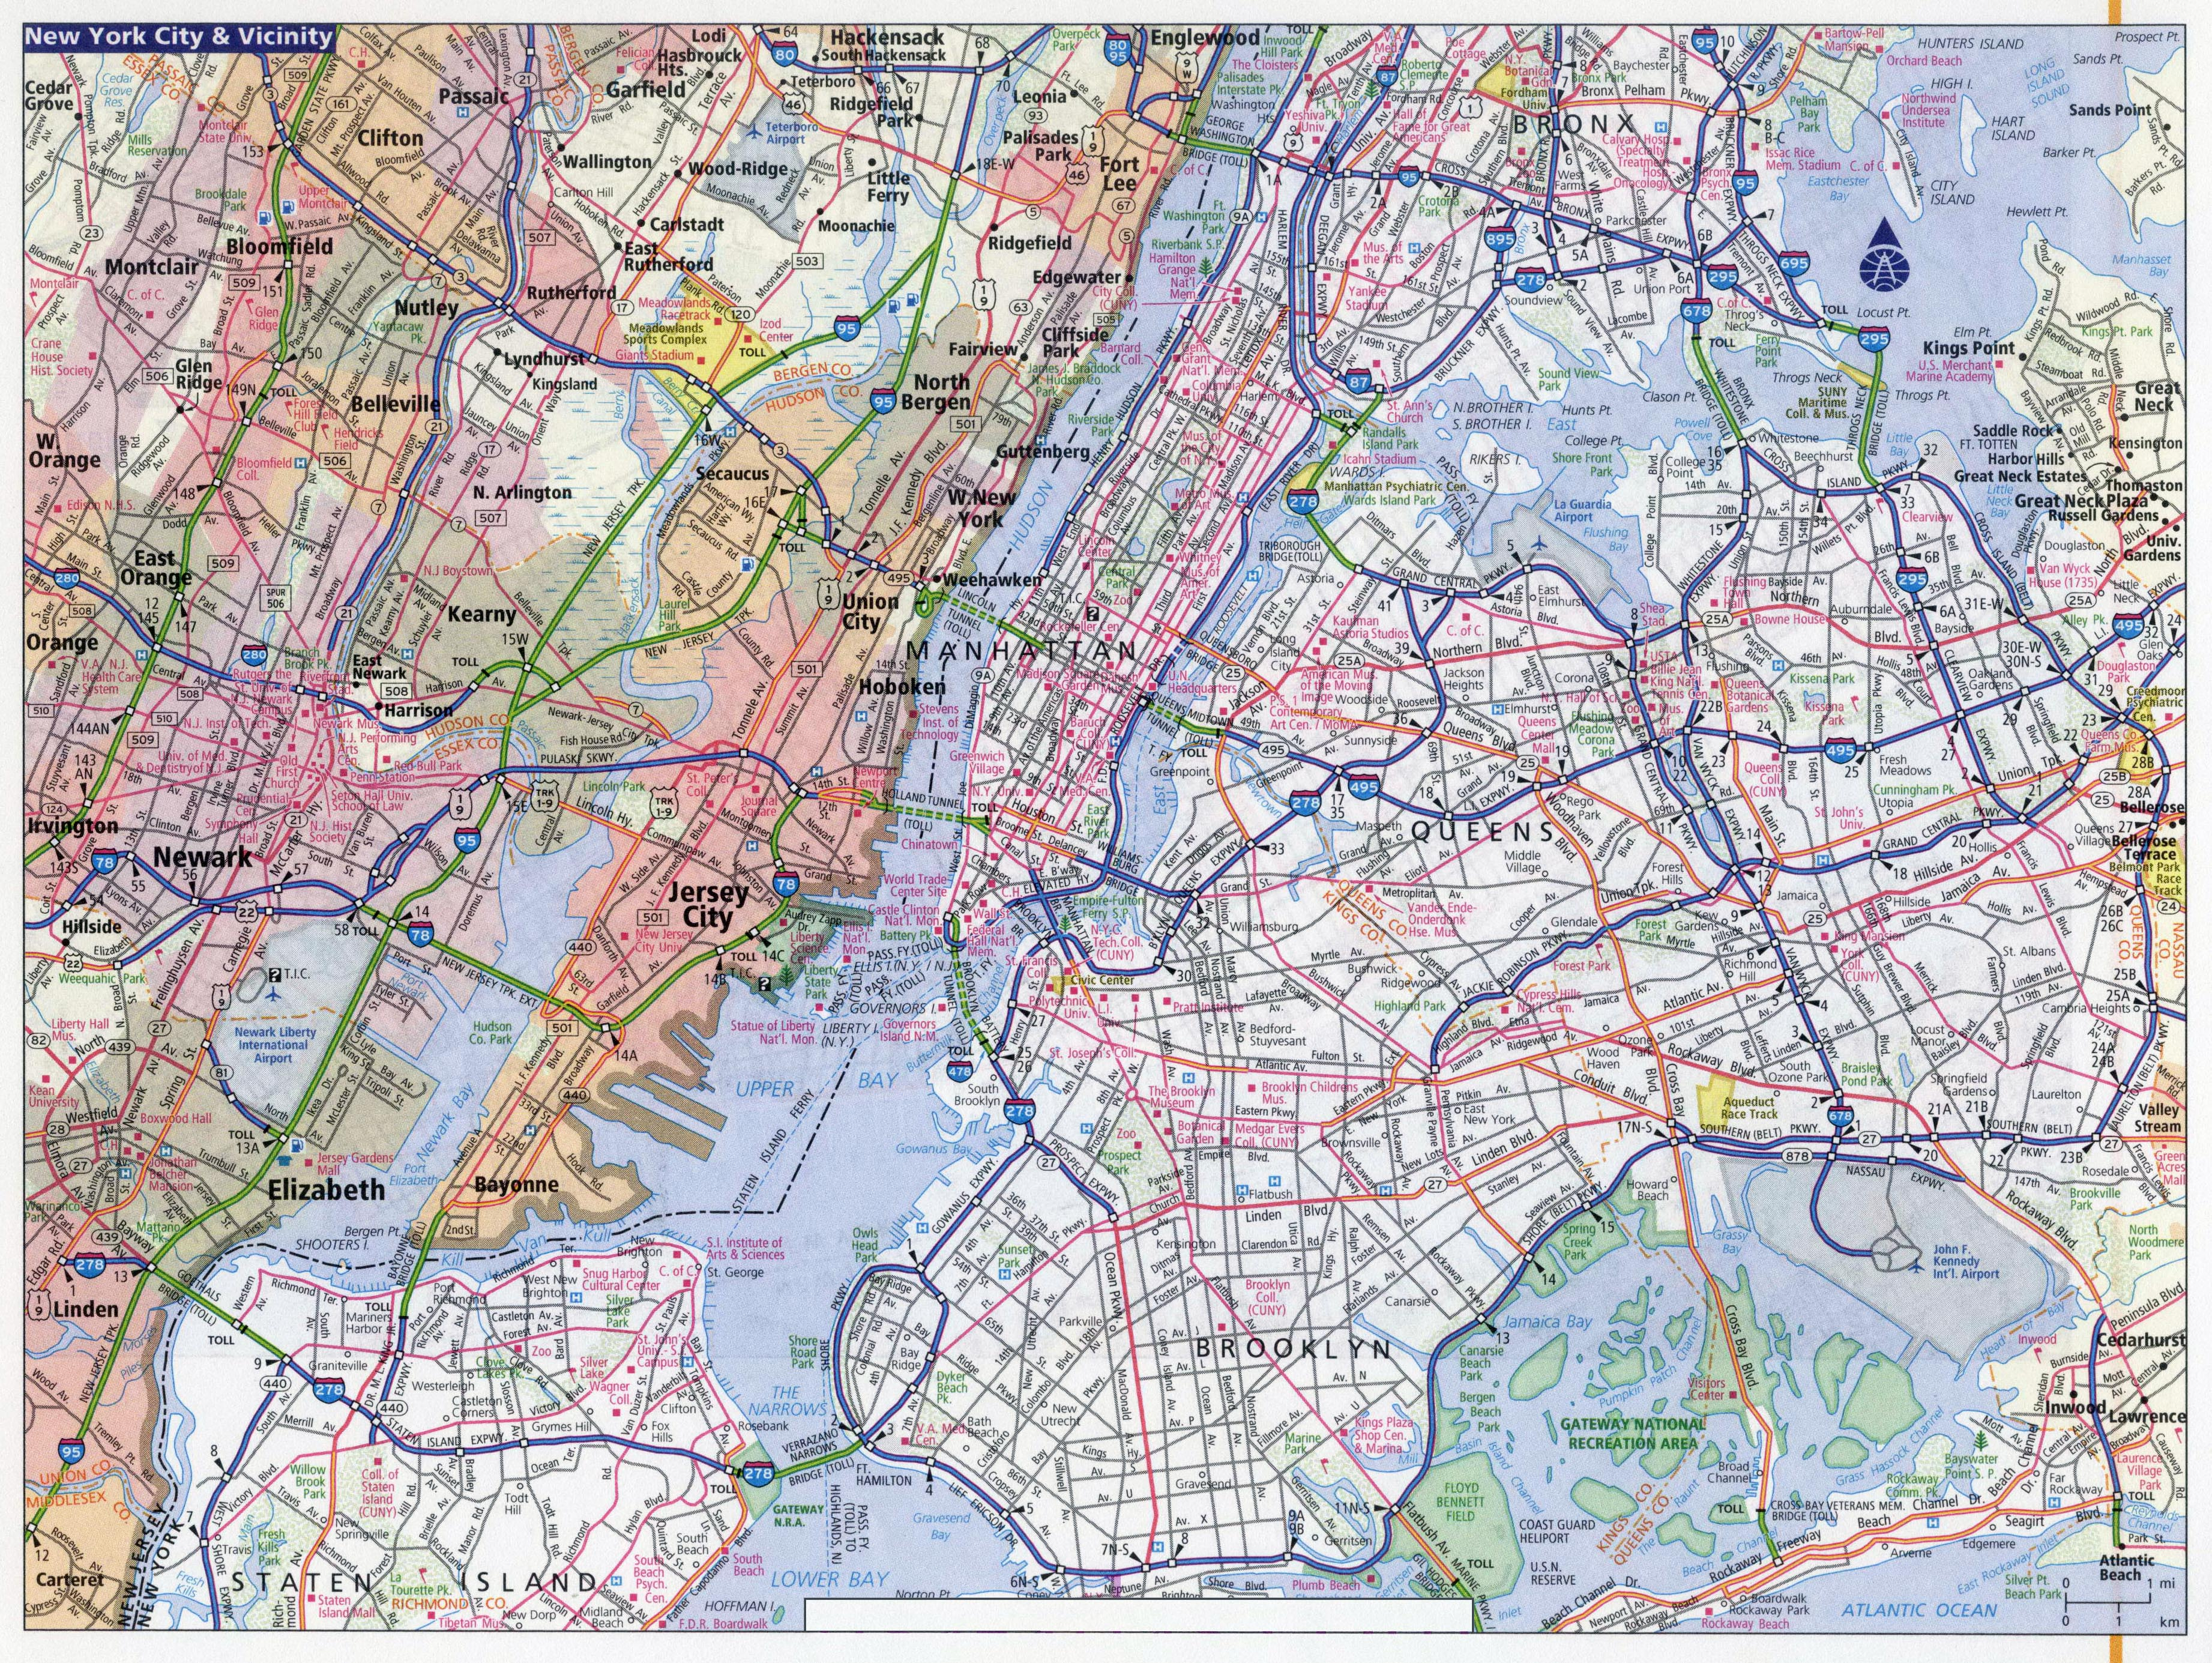 Large Detailed Road Map Of New York City New York City Large - Road map new york state